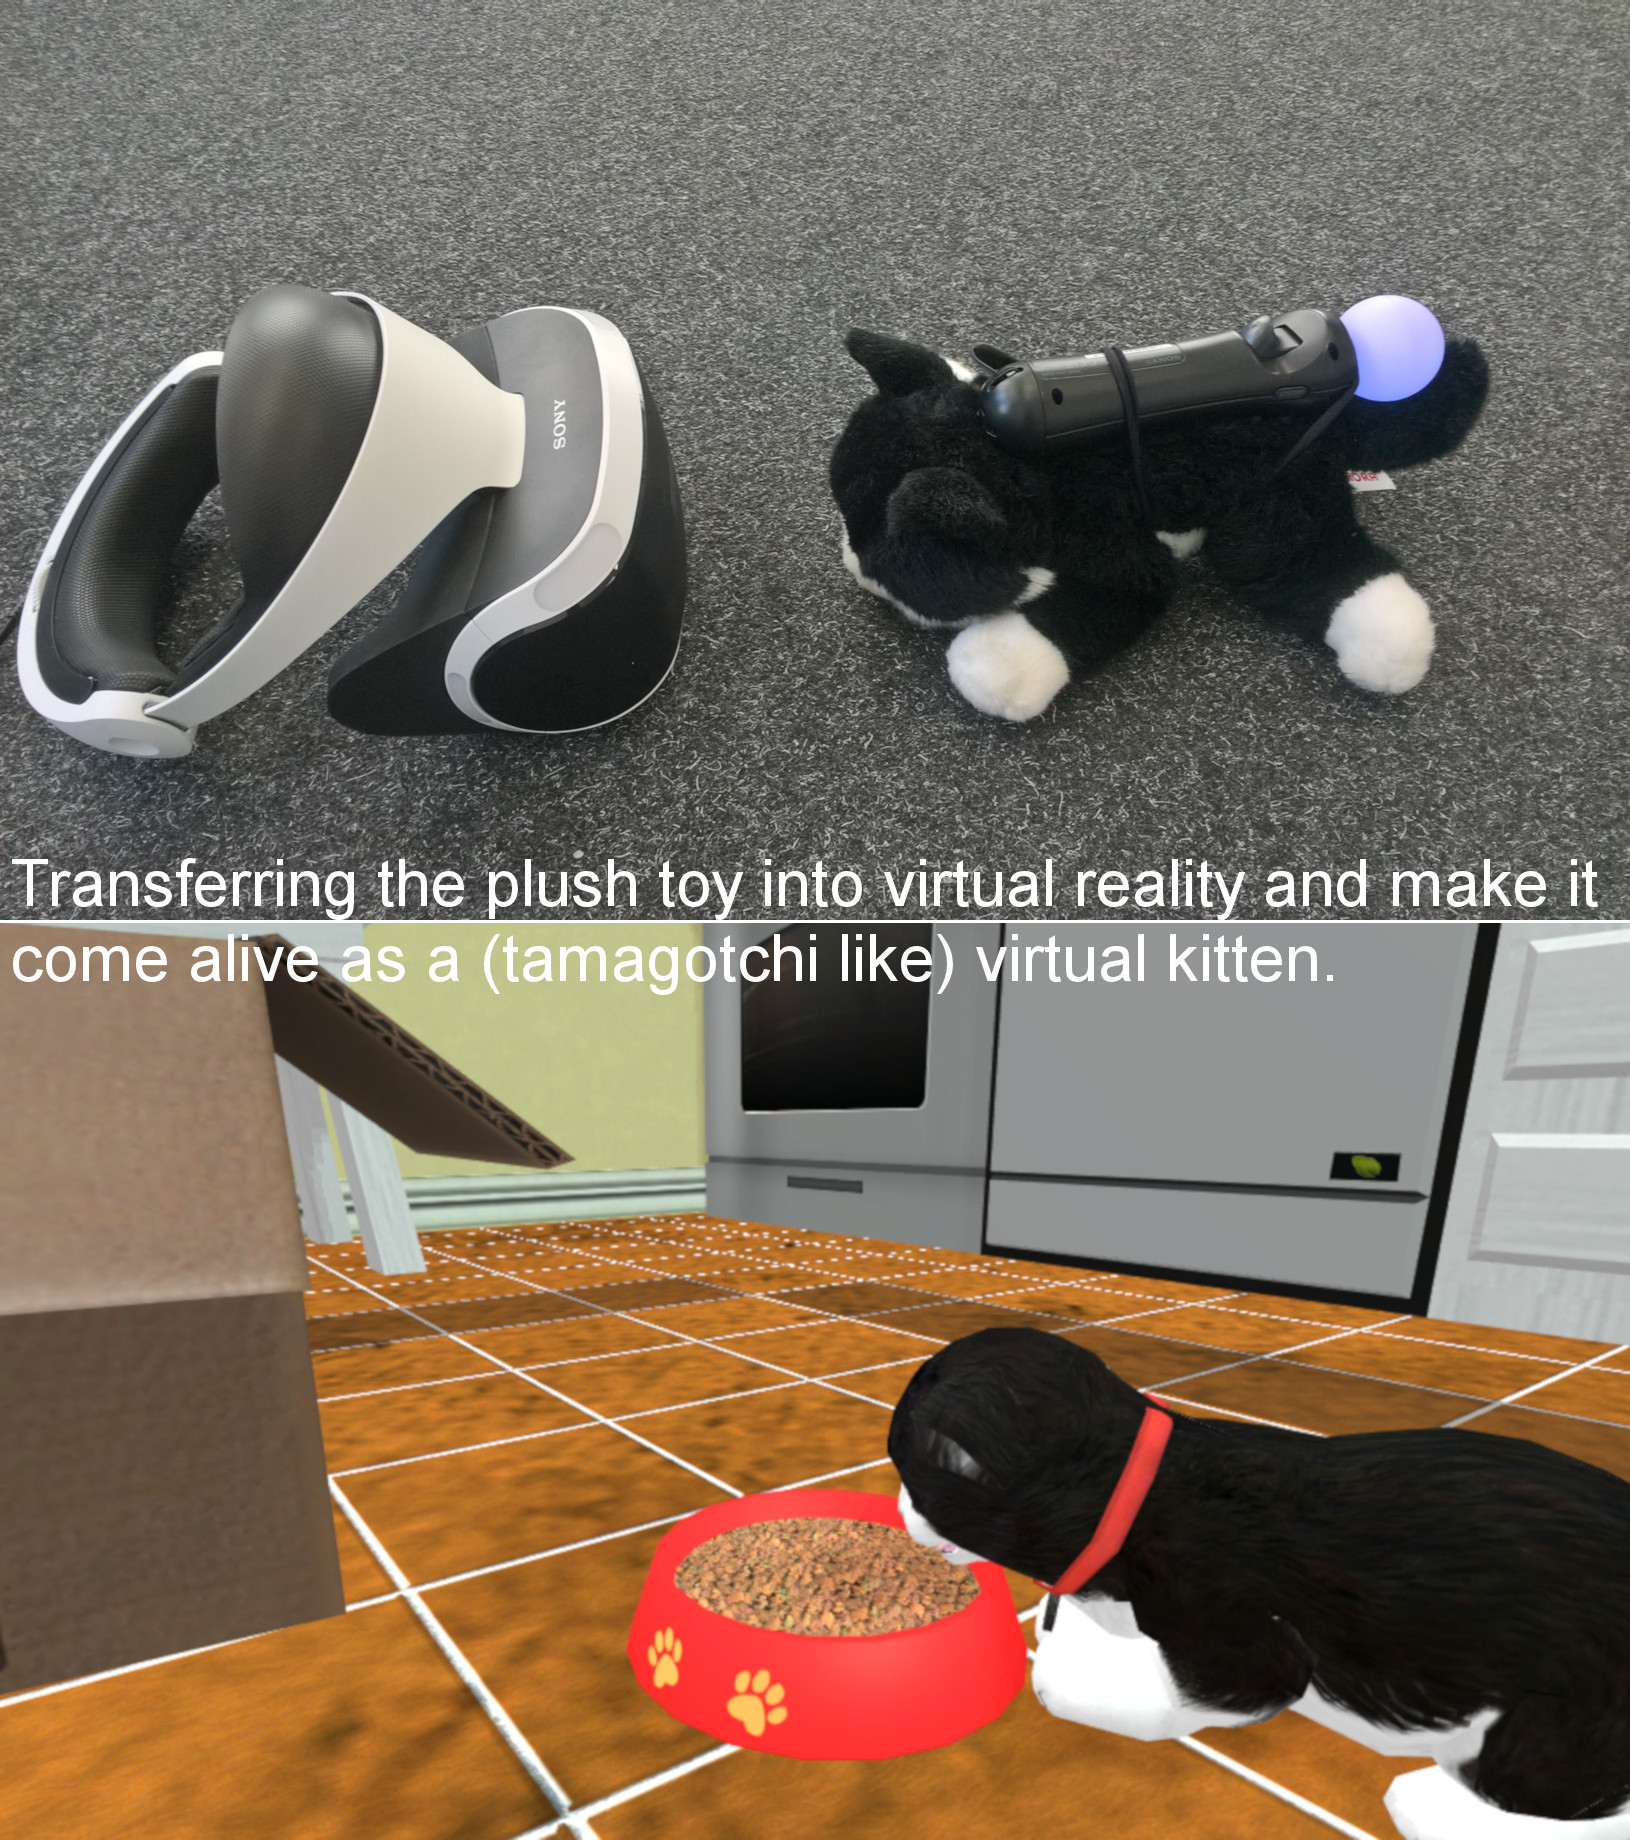 Sample image, showing the usage of the PS Move Controller